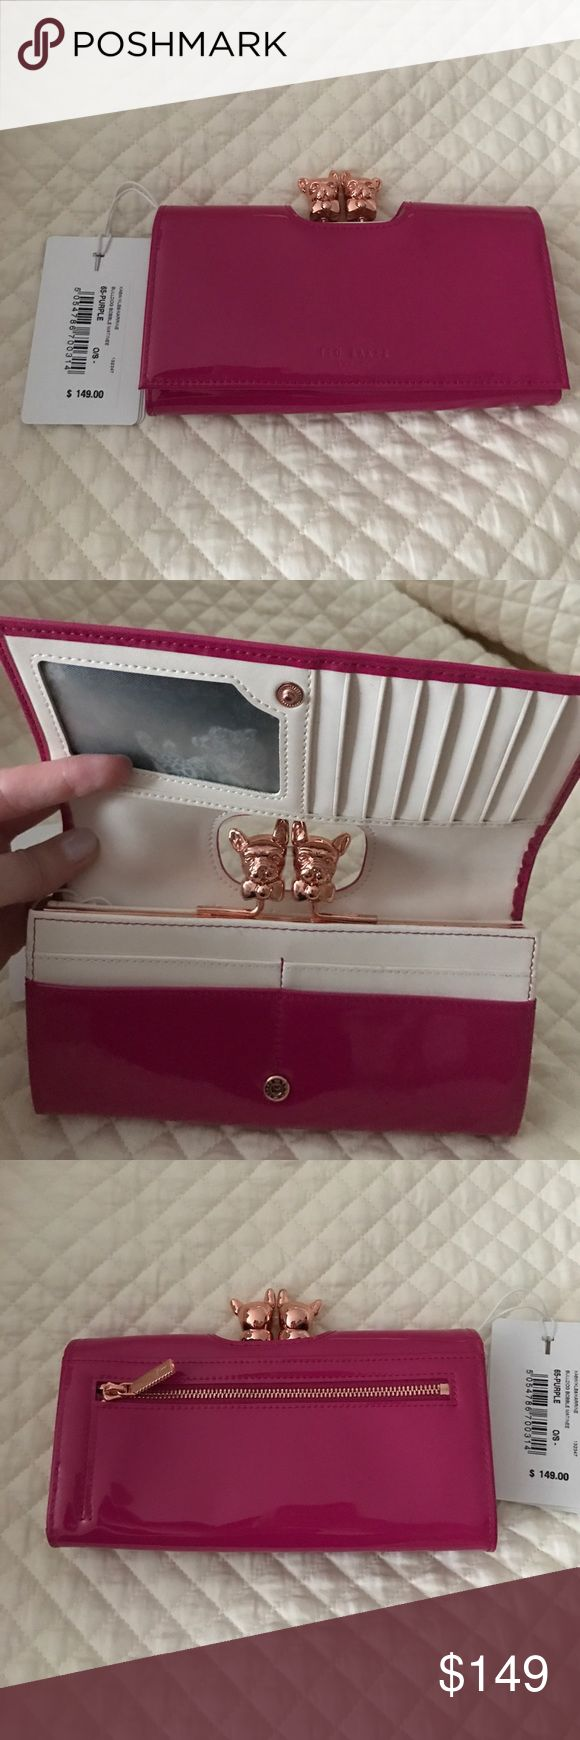 Ted Baker Wallet Brand new Ted Baker fuschia patent wallet. Front closure with 3 large slots. Holds 12 credit cards and French bulldog decorative closure for inside coin purse. Also has back zipper on back. Ted Baker Bags Wallets